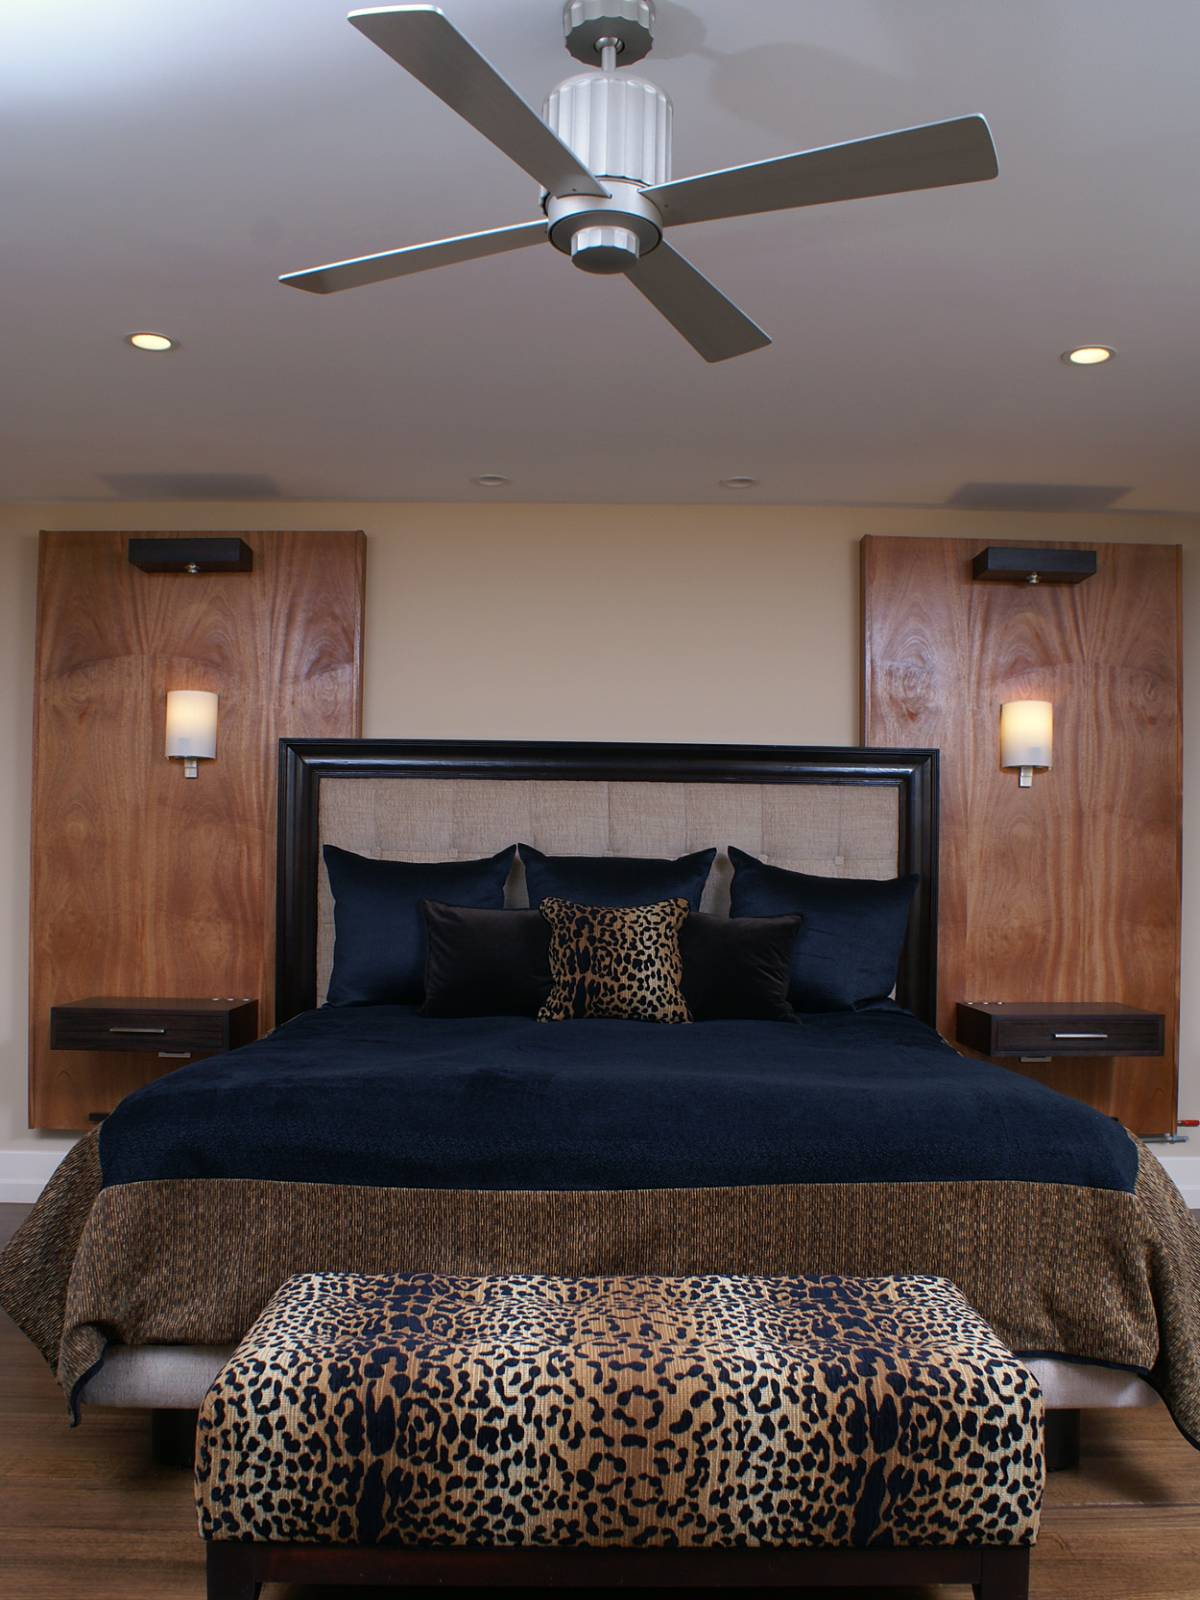 Leopard Print Bedroom Ideas The Pand Hotel Western